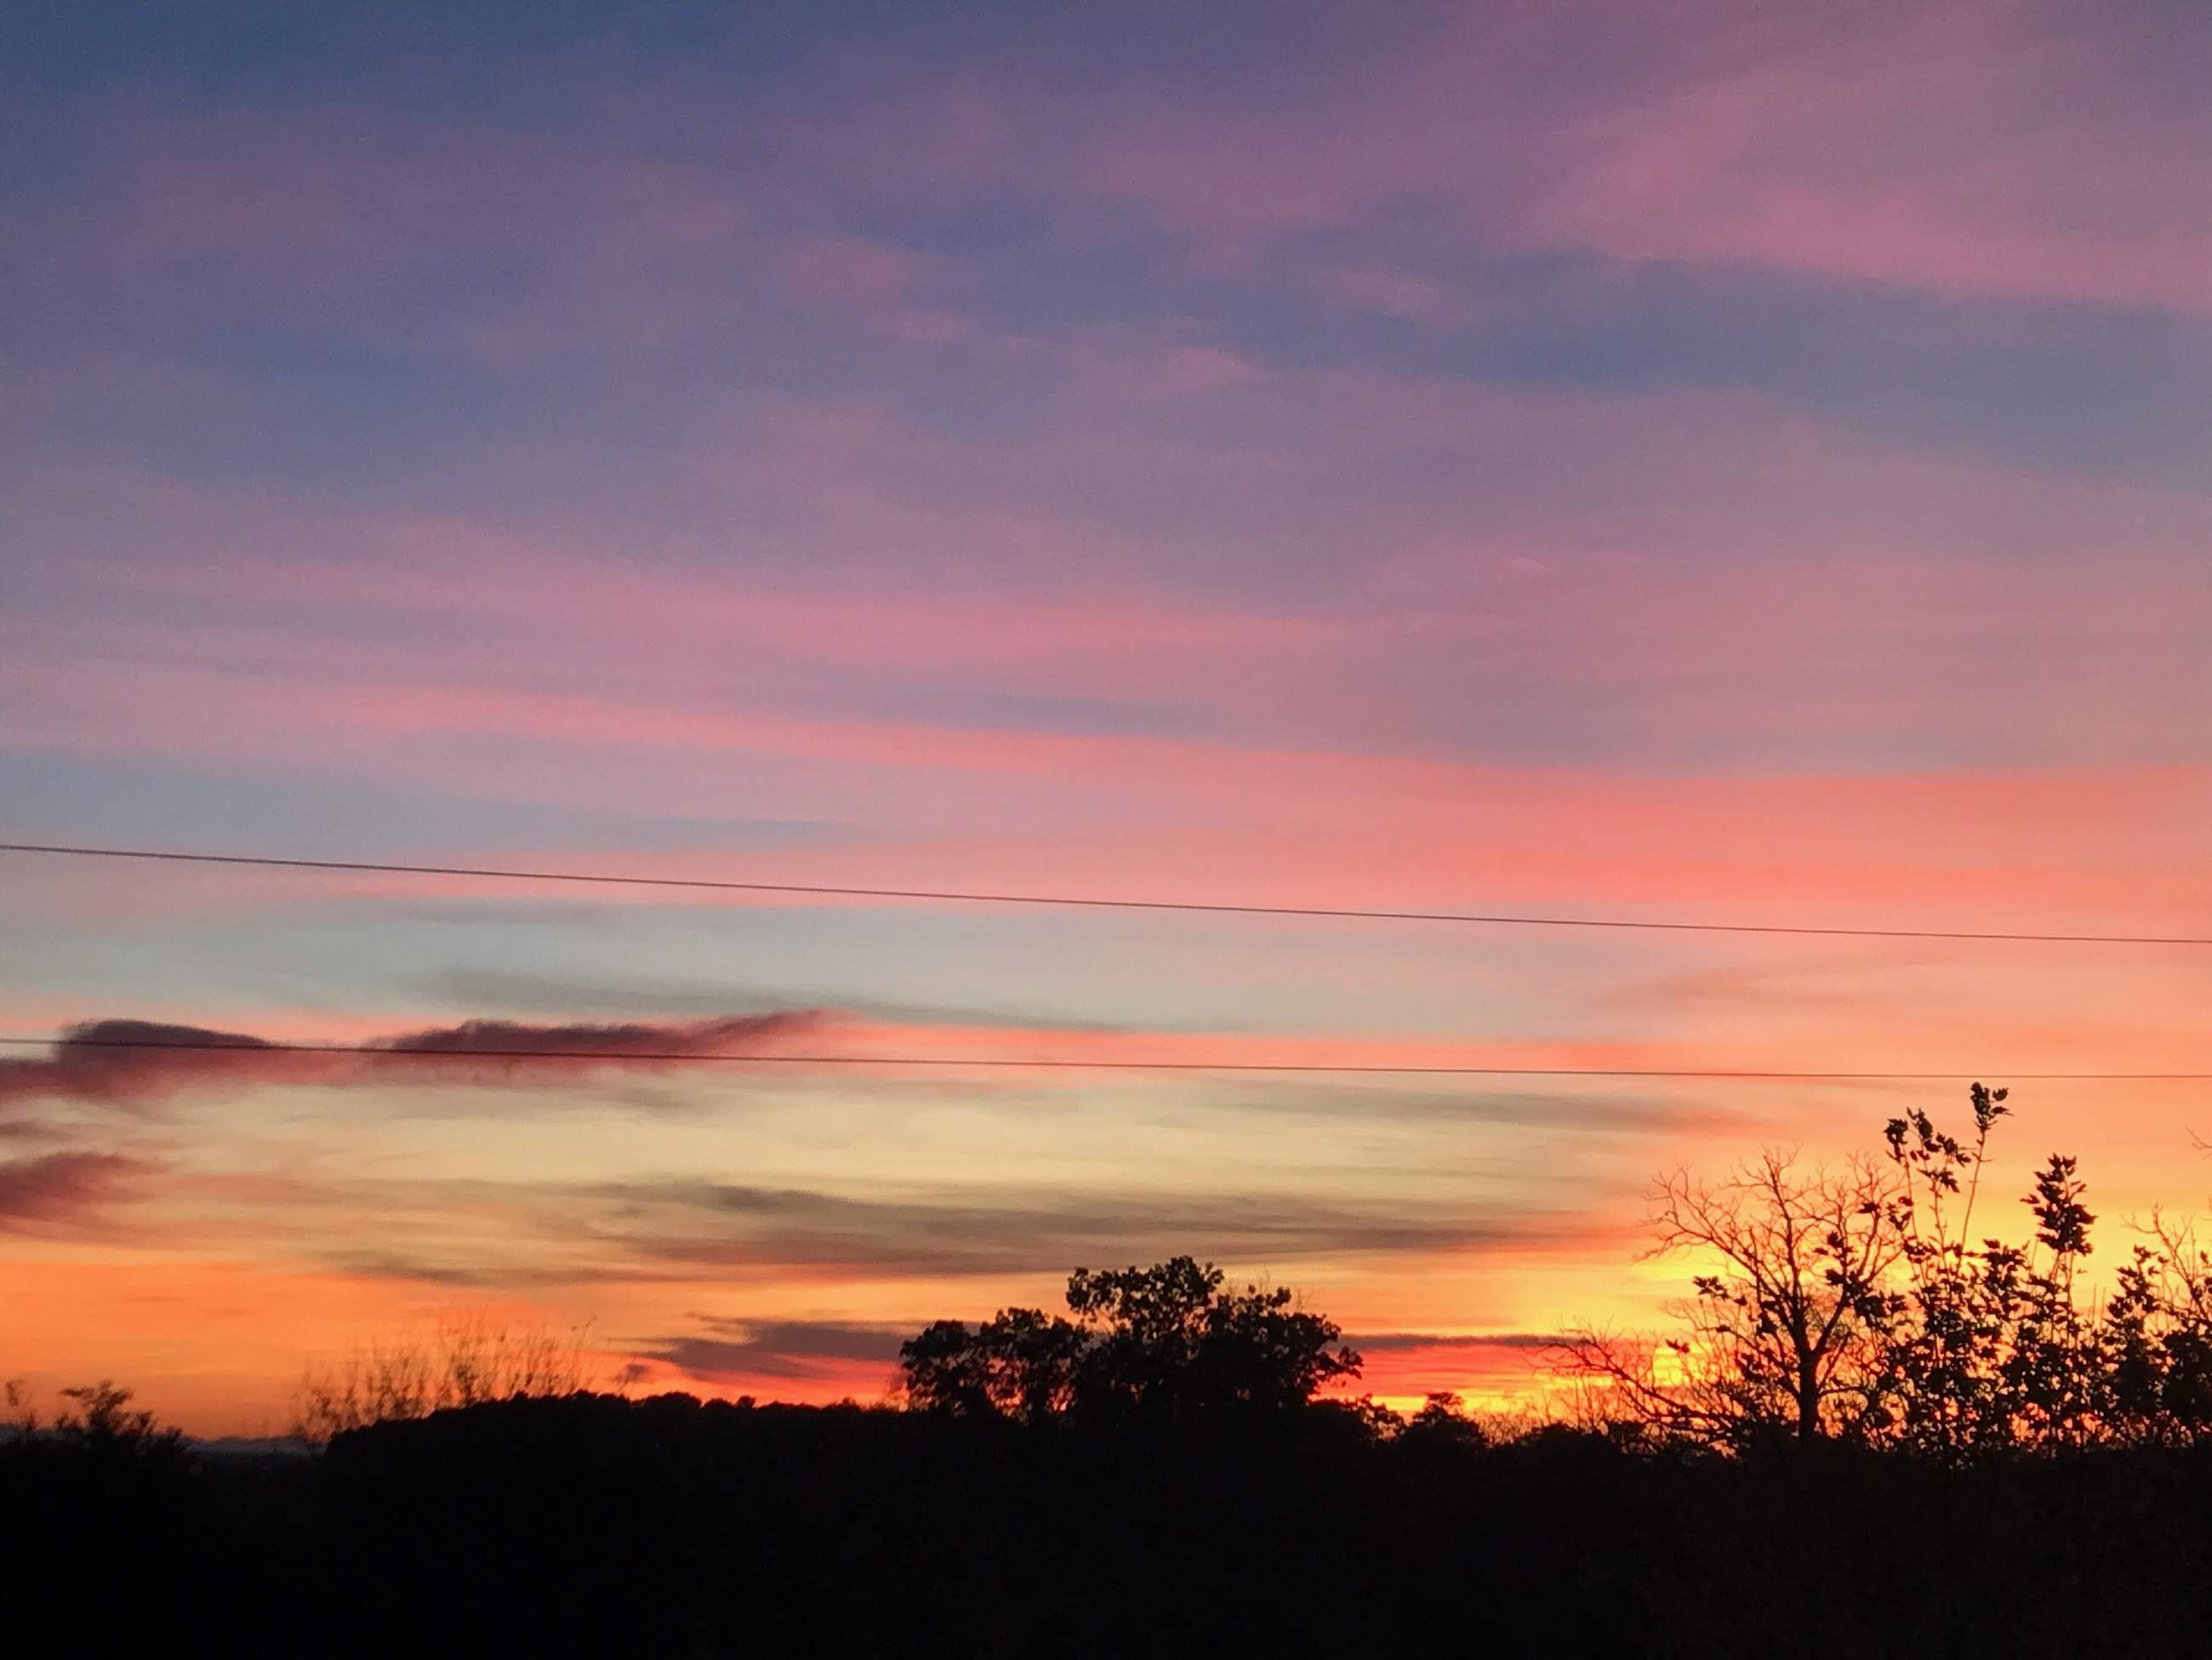 Brillant pinks, blues and oranges in the morning light